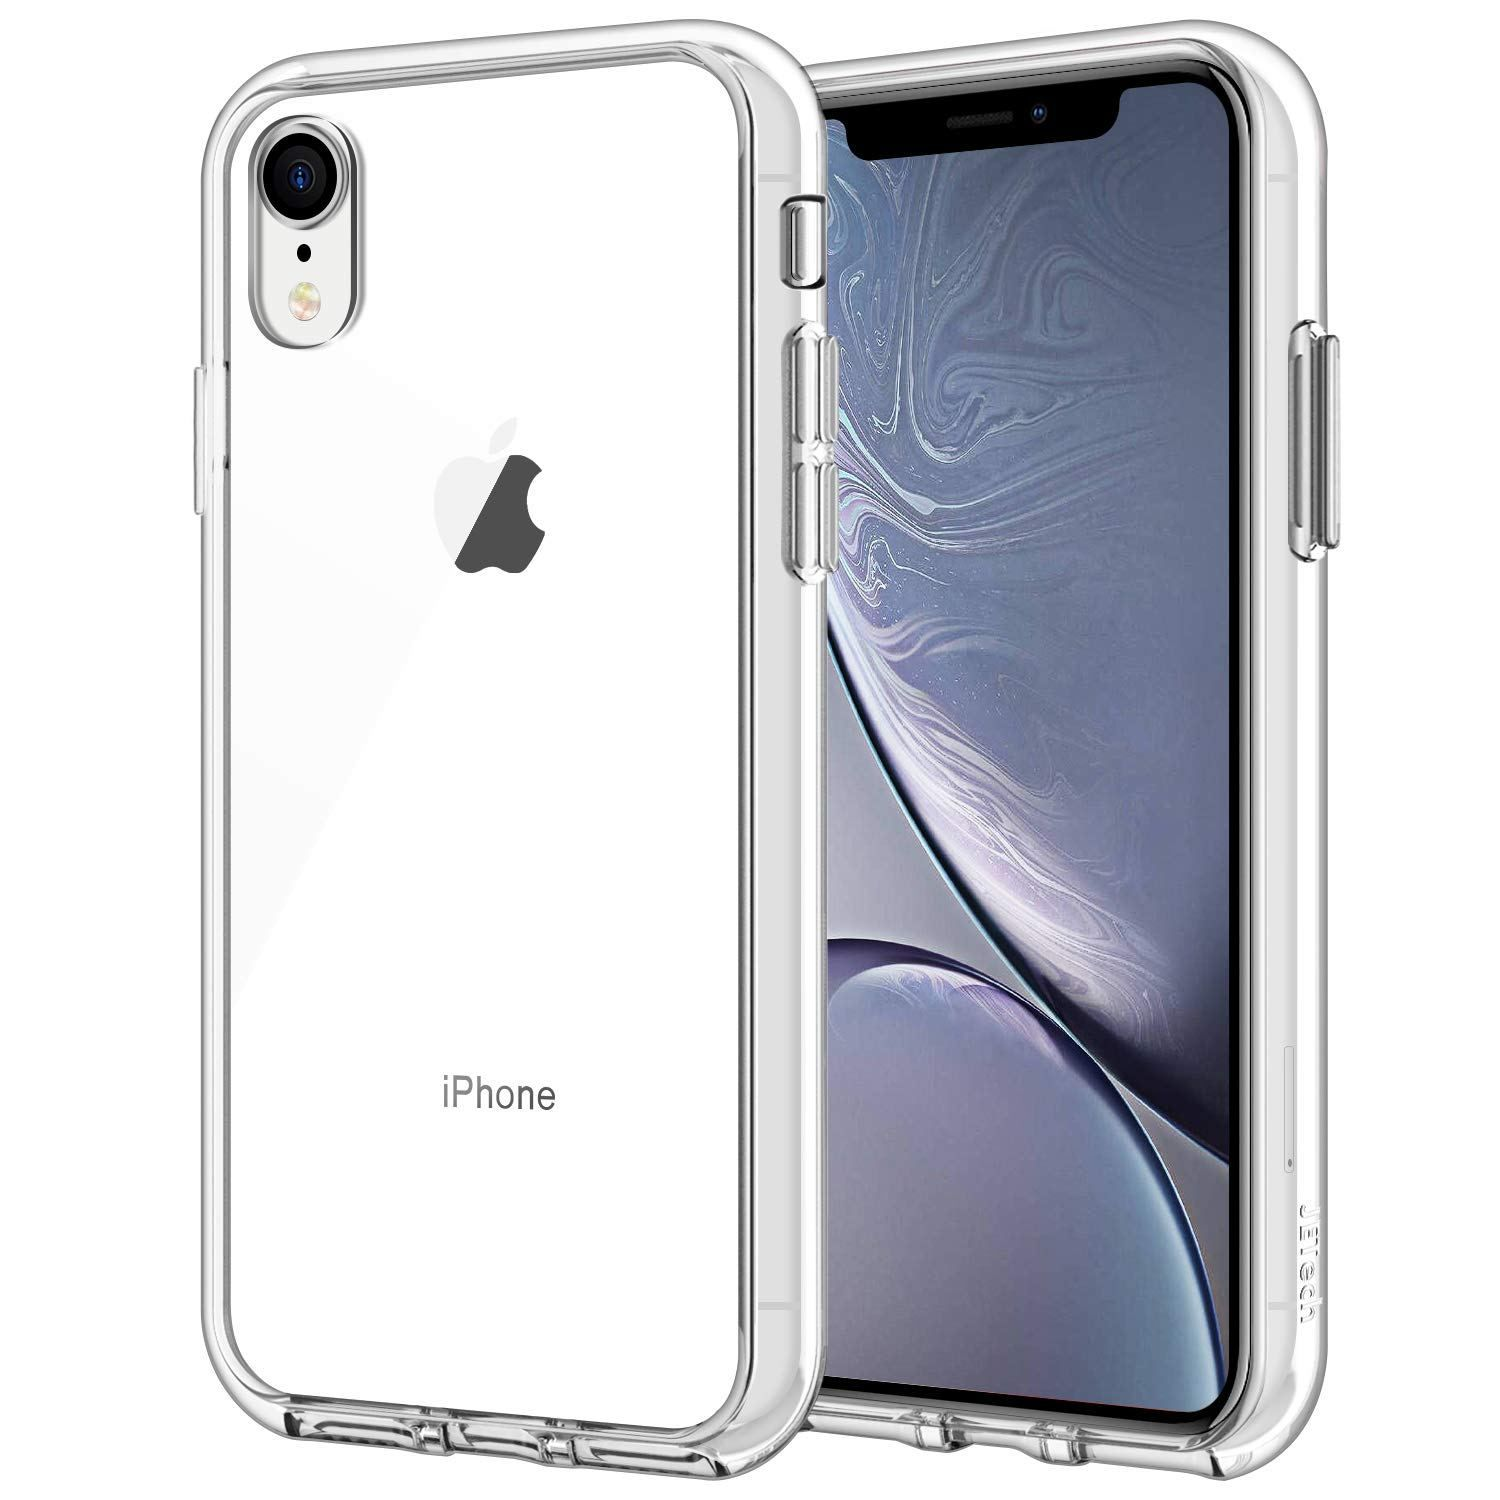 The best ultra-thin iPhone X cases